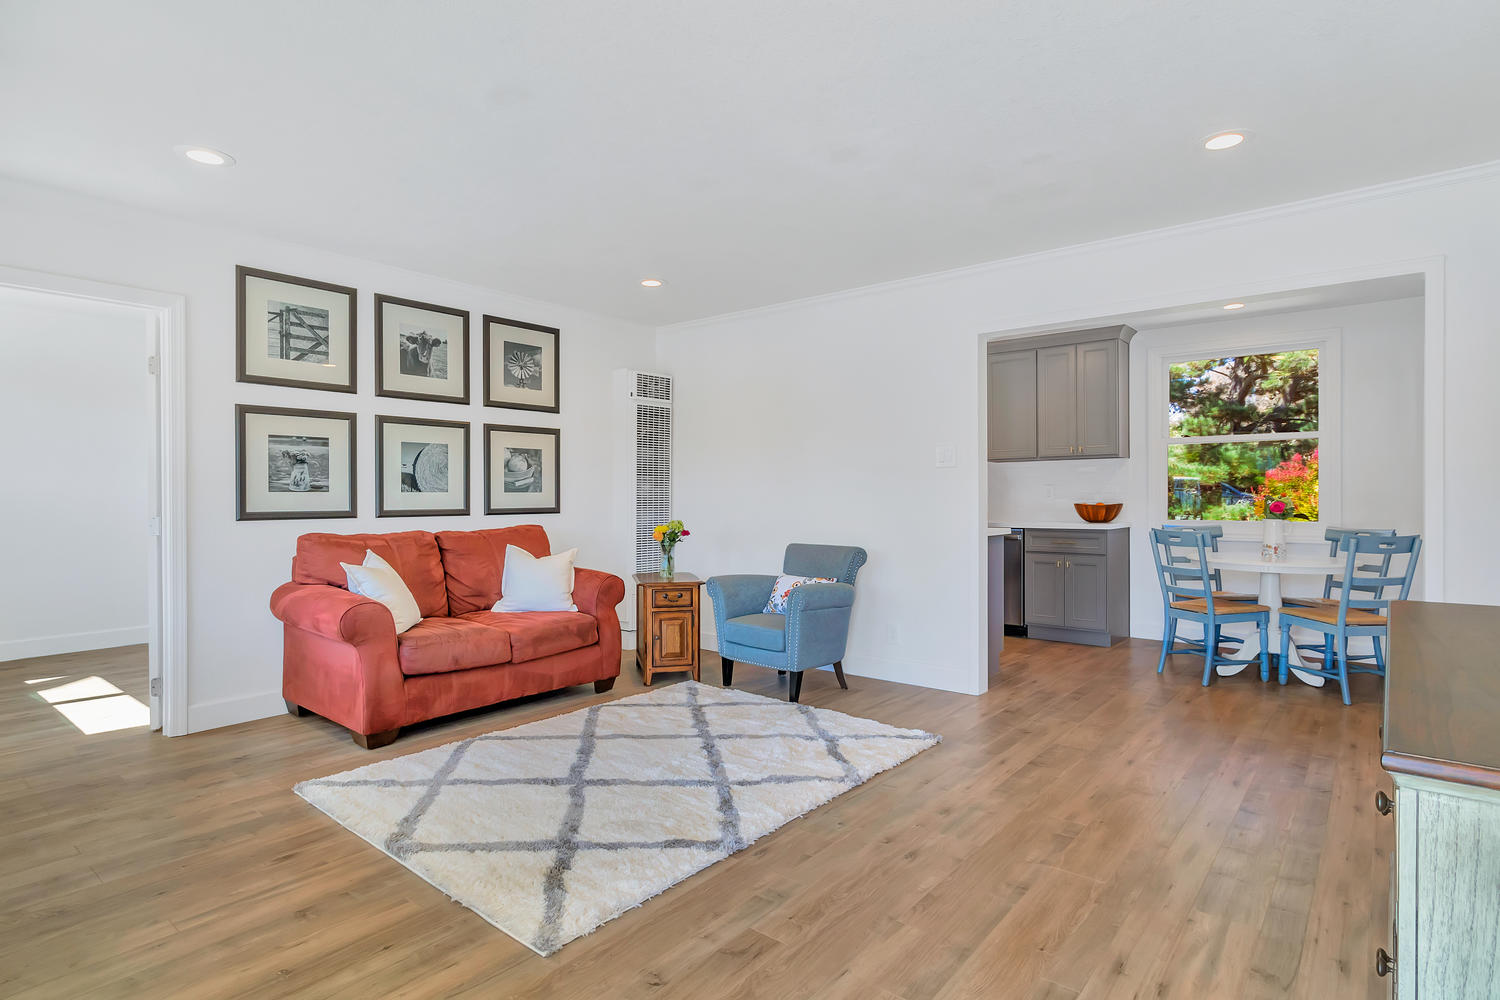 This vintage charmer was beautifully remodeled to create a bright and functional living space.